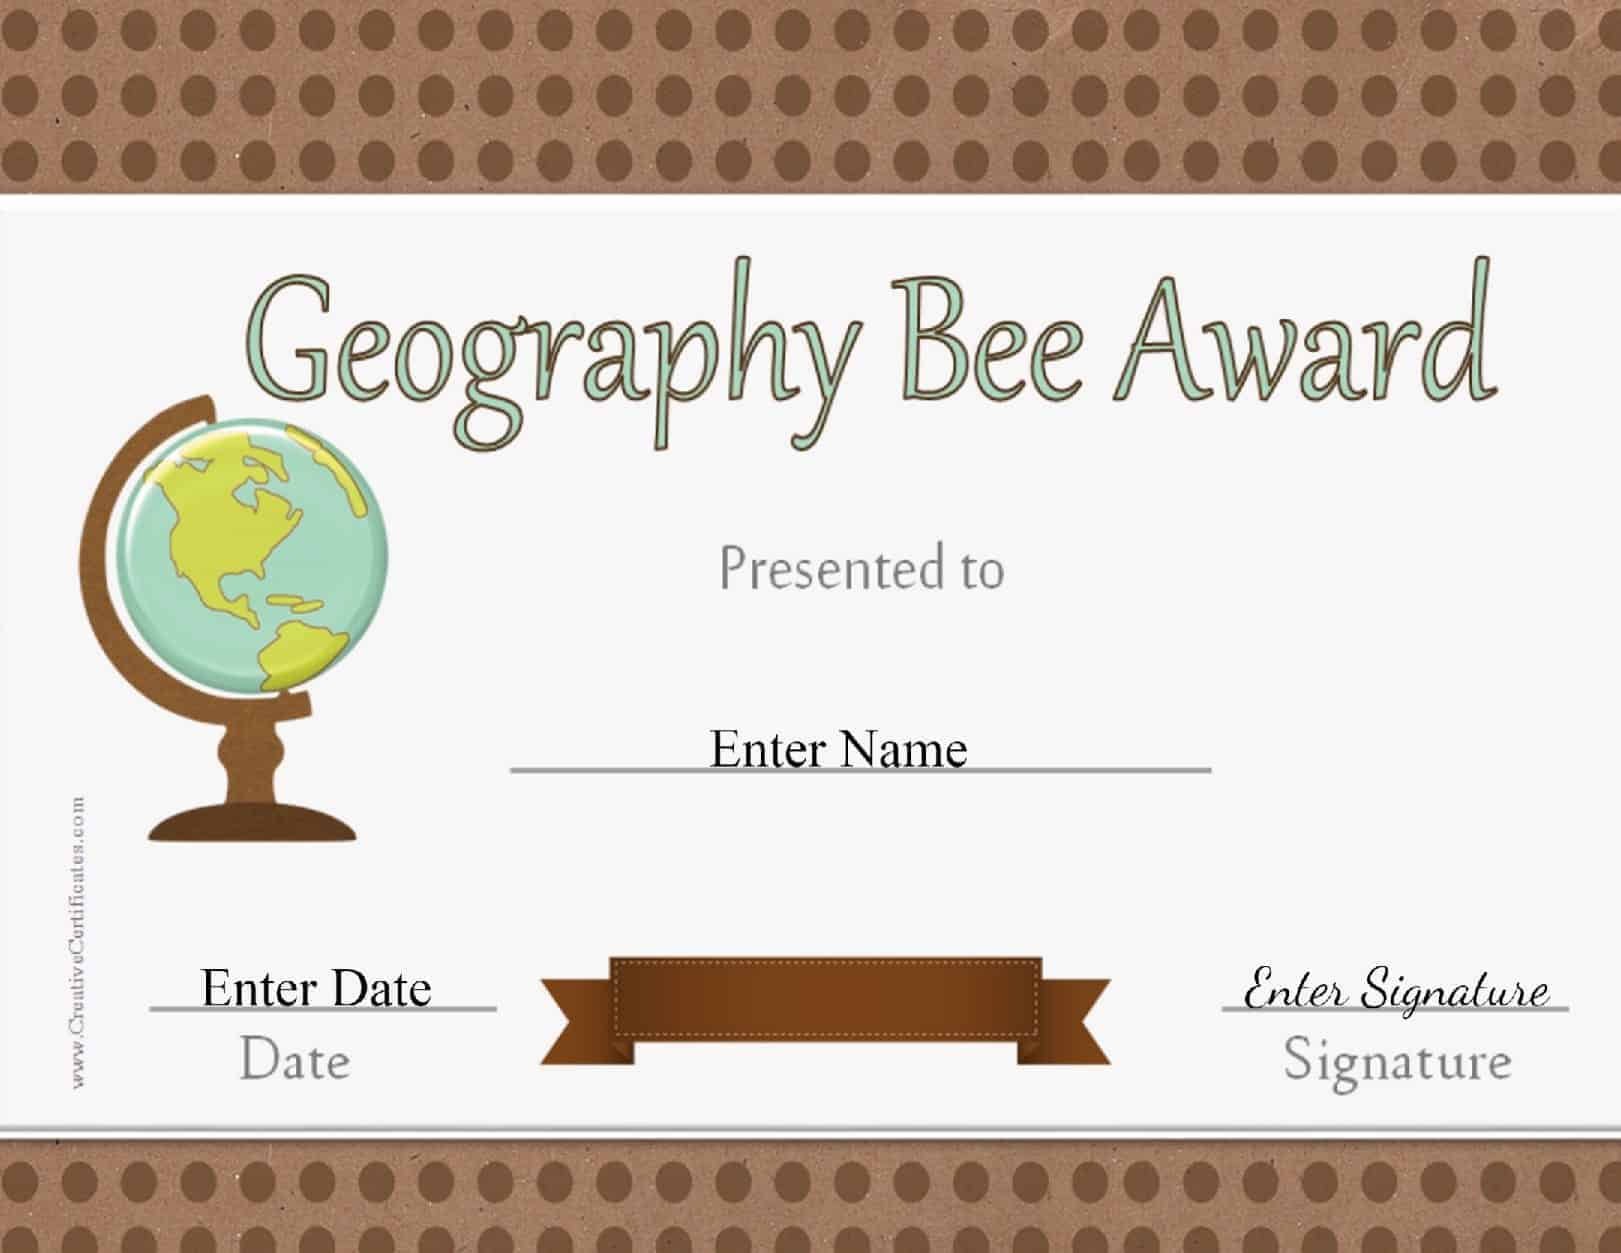 Graduation gift certificate template free 5 certificate of graduation gift certificate template free geography bee awards yelopaper Images